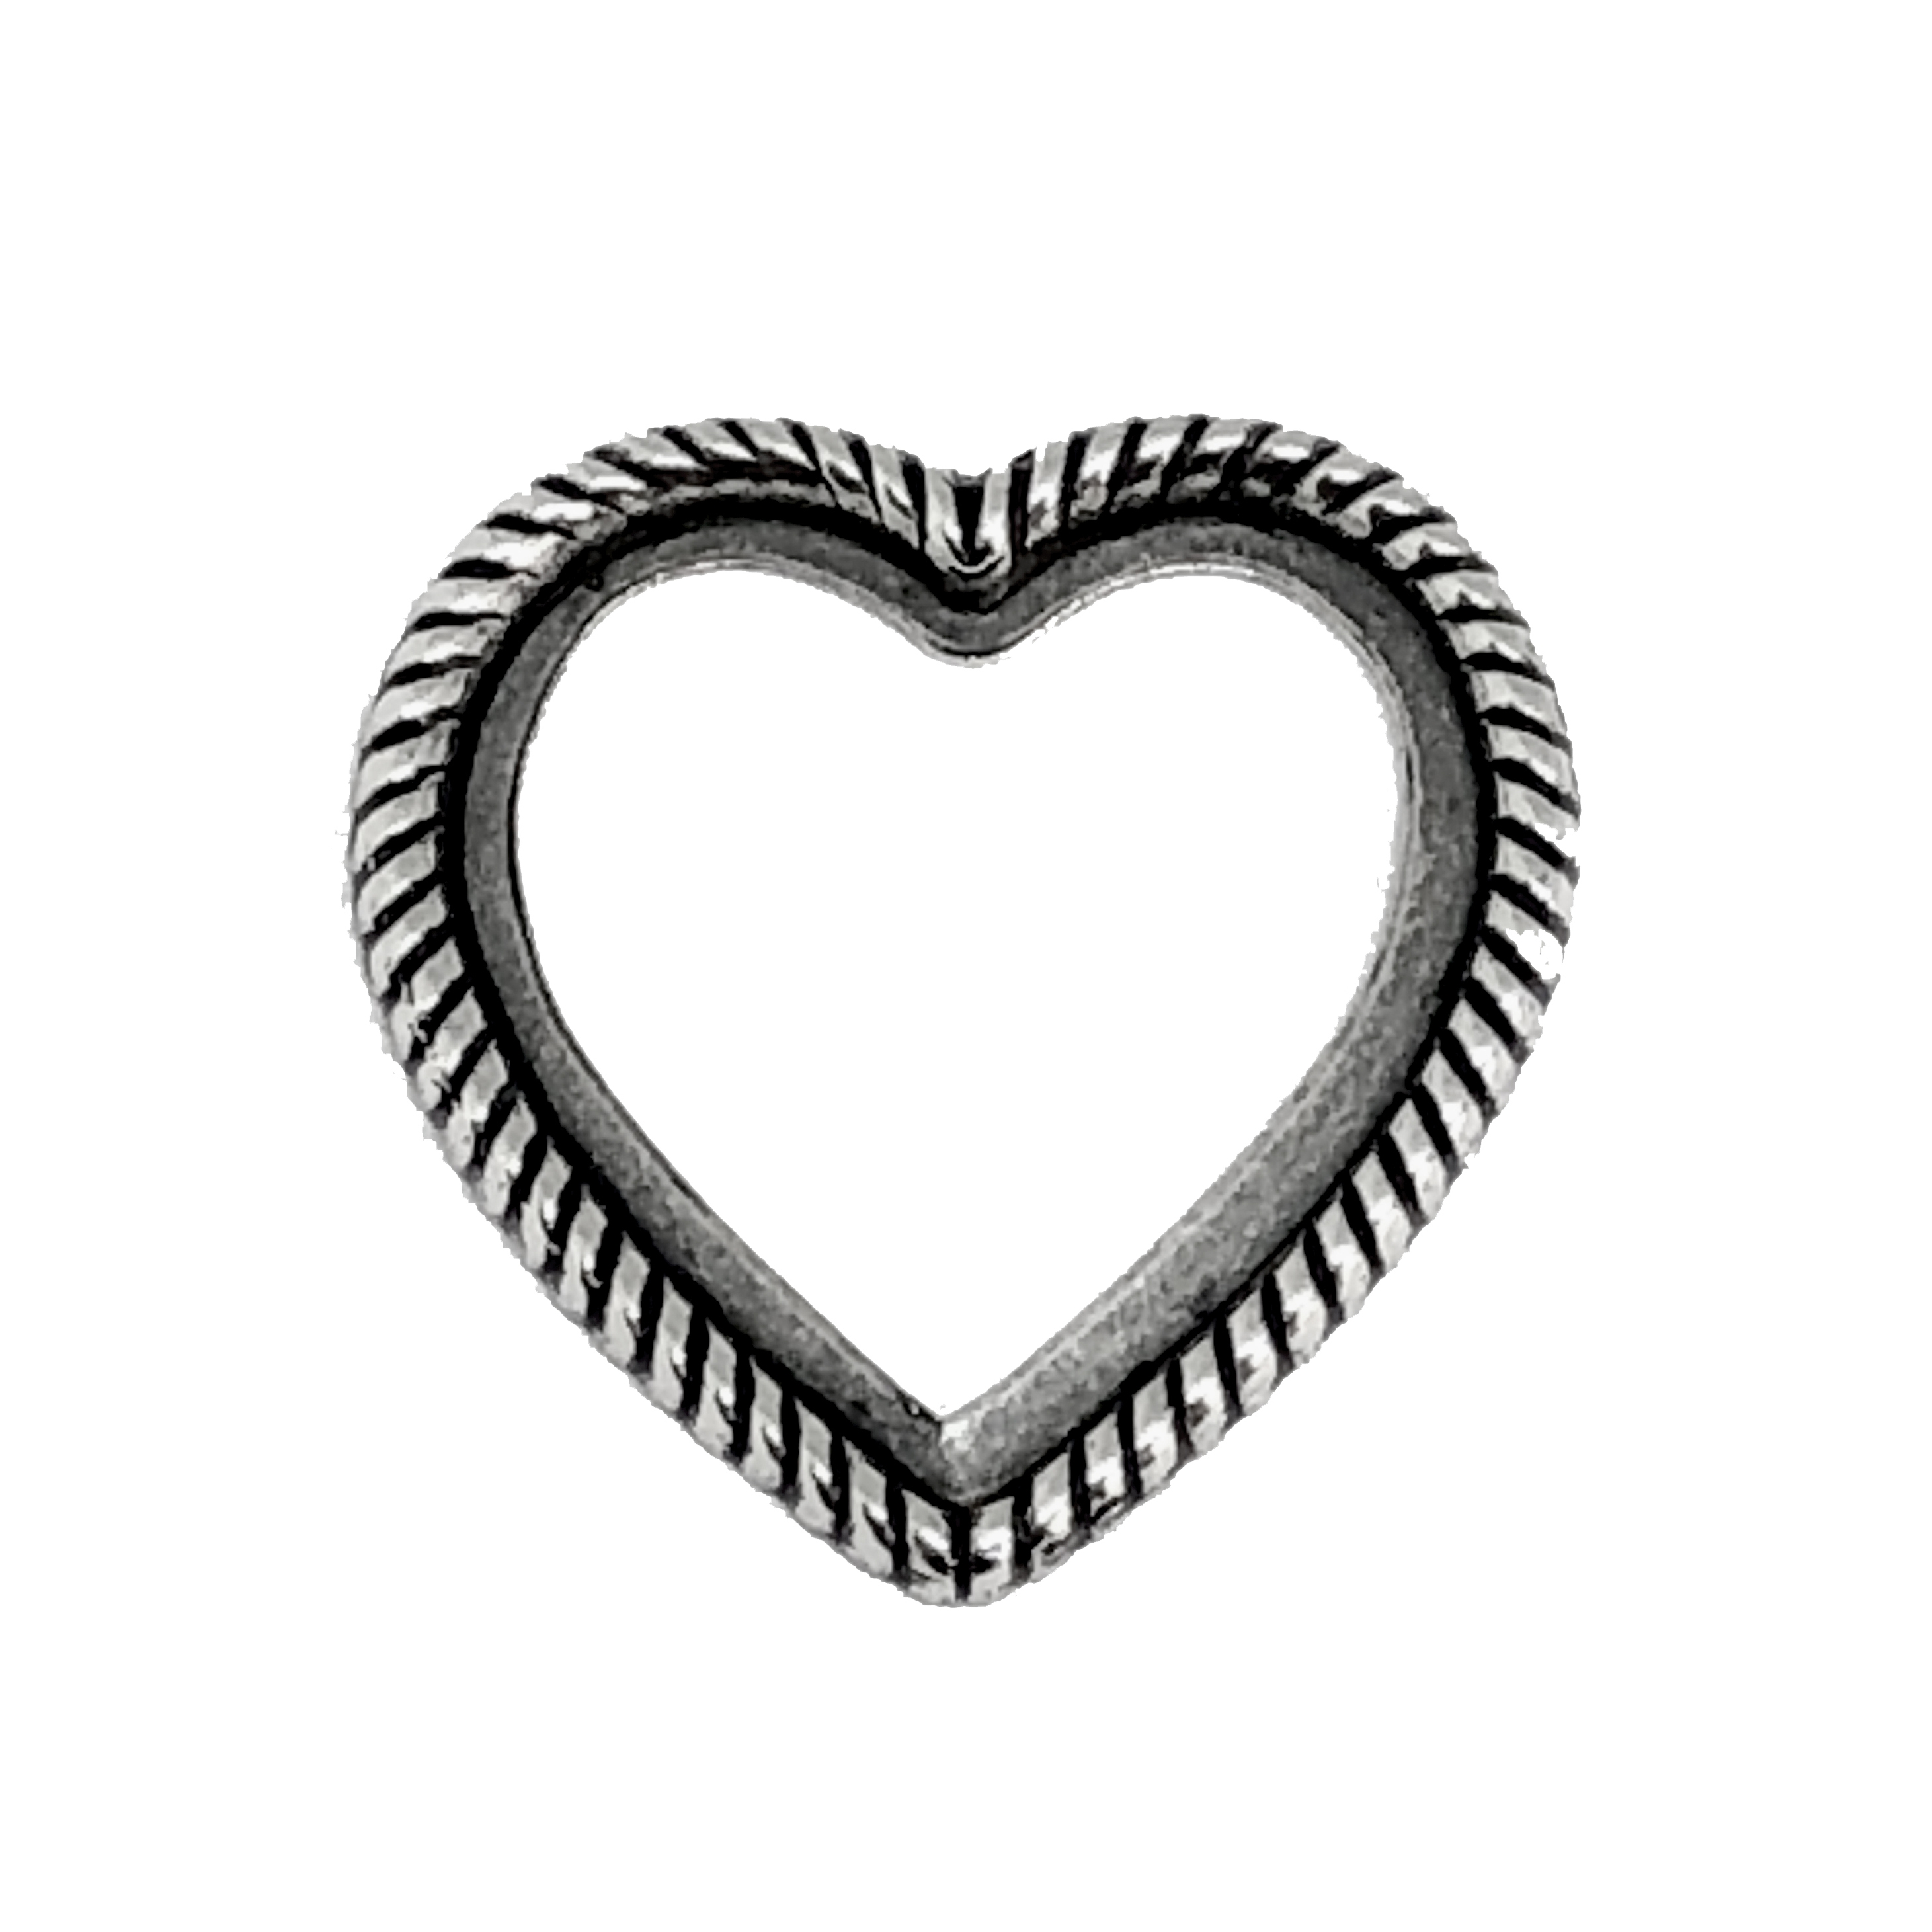 heart shaped bezel, silverware silverplate, antique silver, backless heart, heart mount, heart bezel, rope design heart, backless bezel, bezel, jewelry making, jewelry supplies, 26mm mount, silver, B'sue Boutiques, vintage supplies, 05953